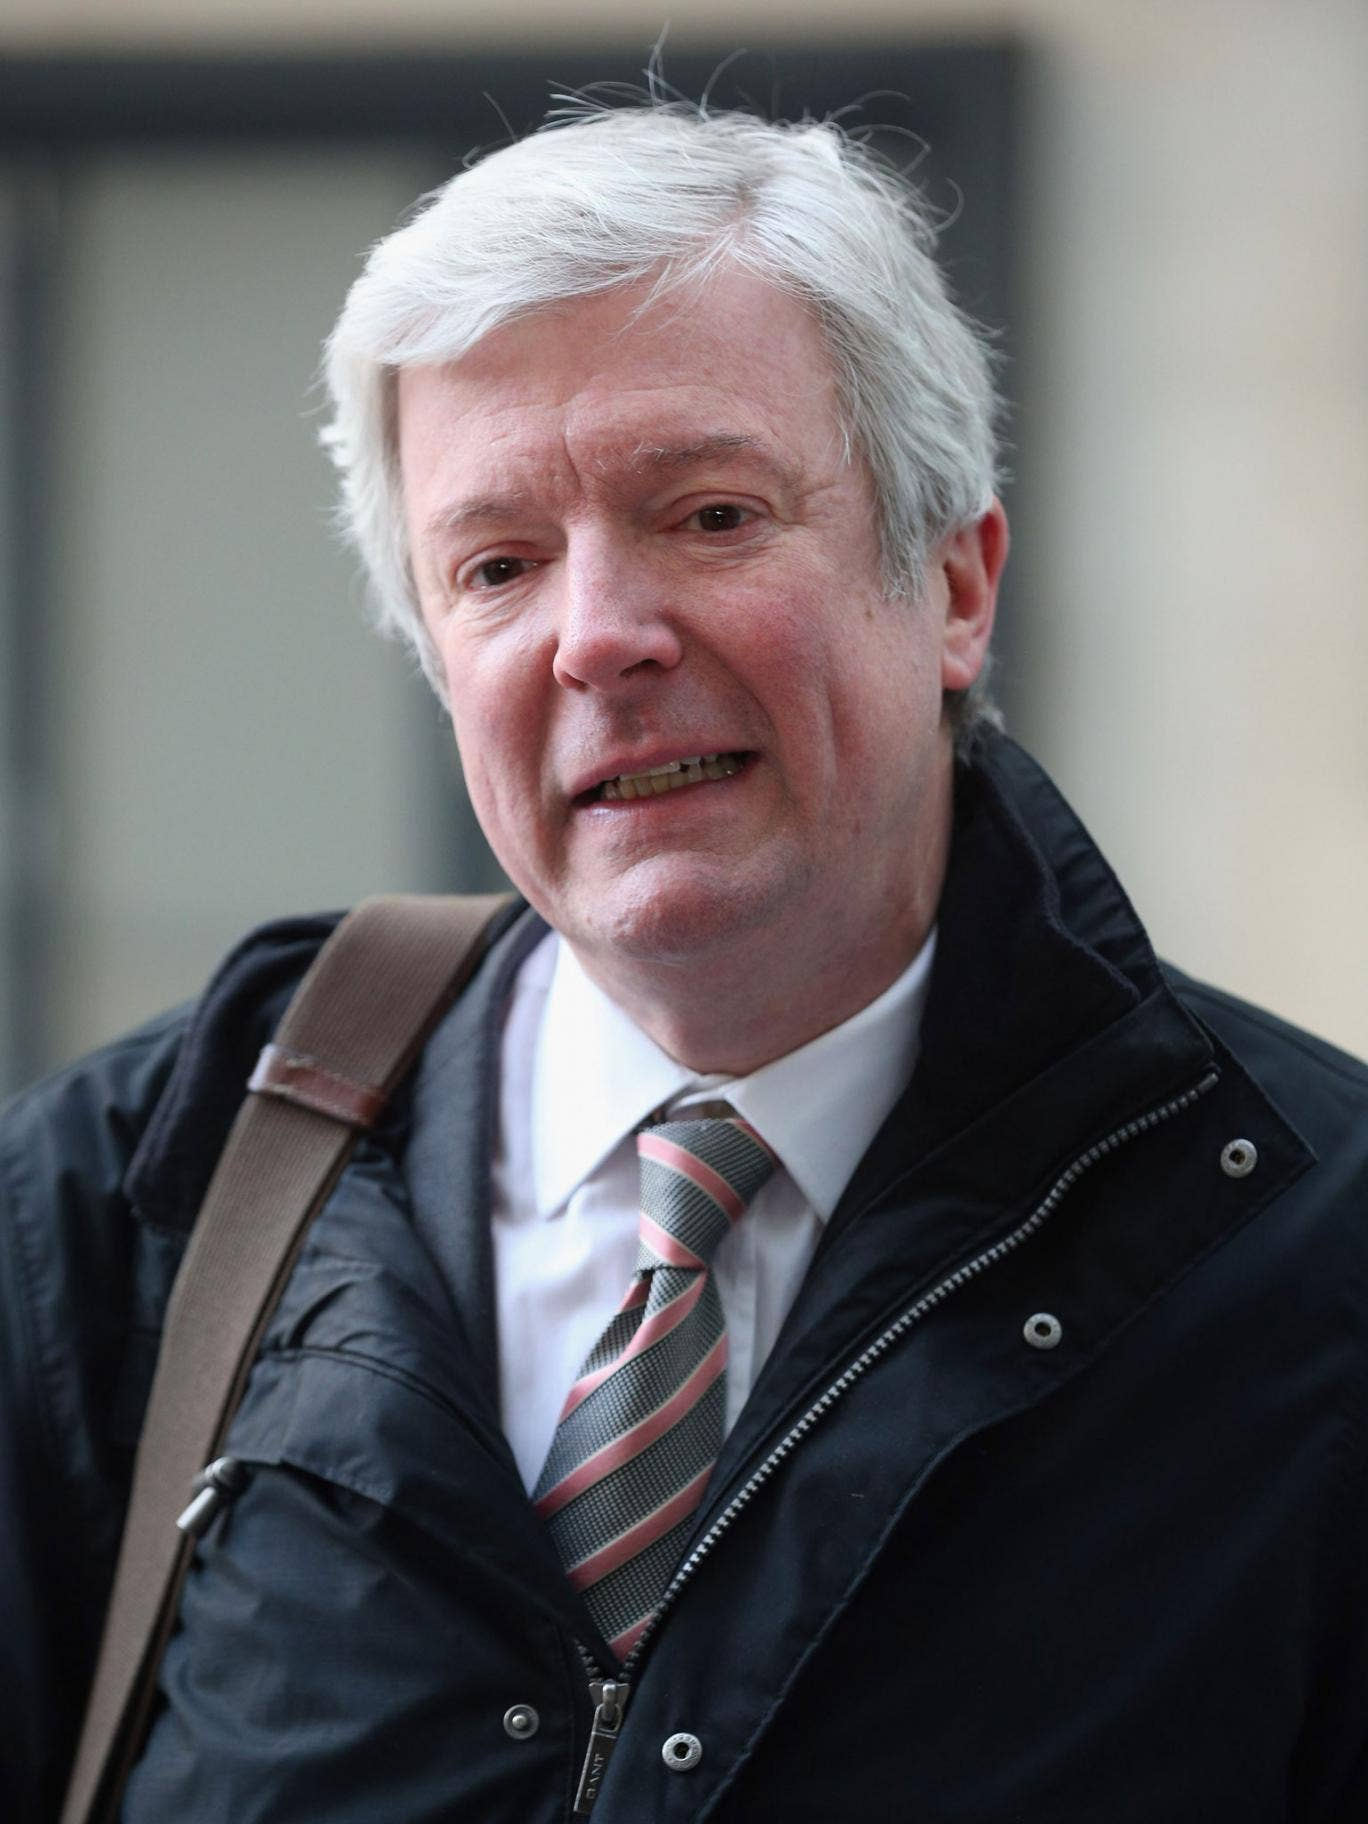 Director general Tony Hall said he will take a hard line on bullying